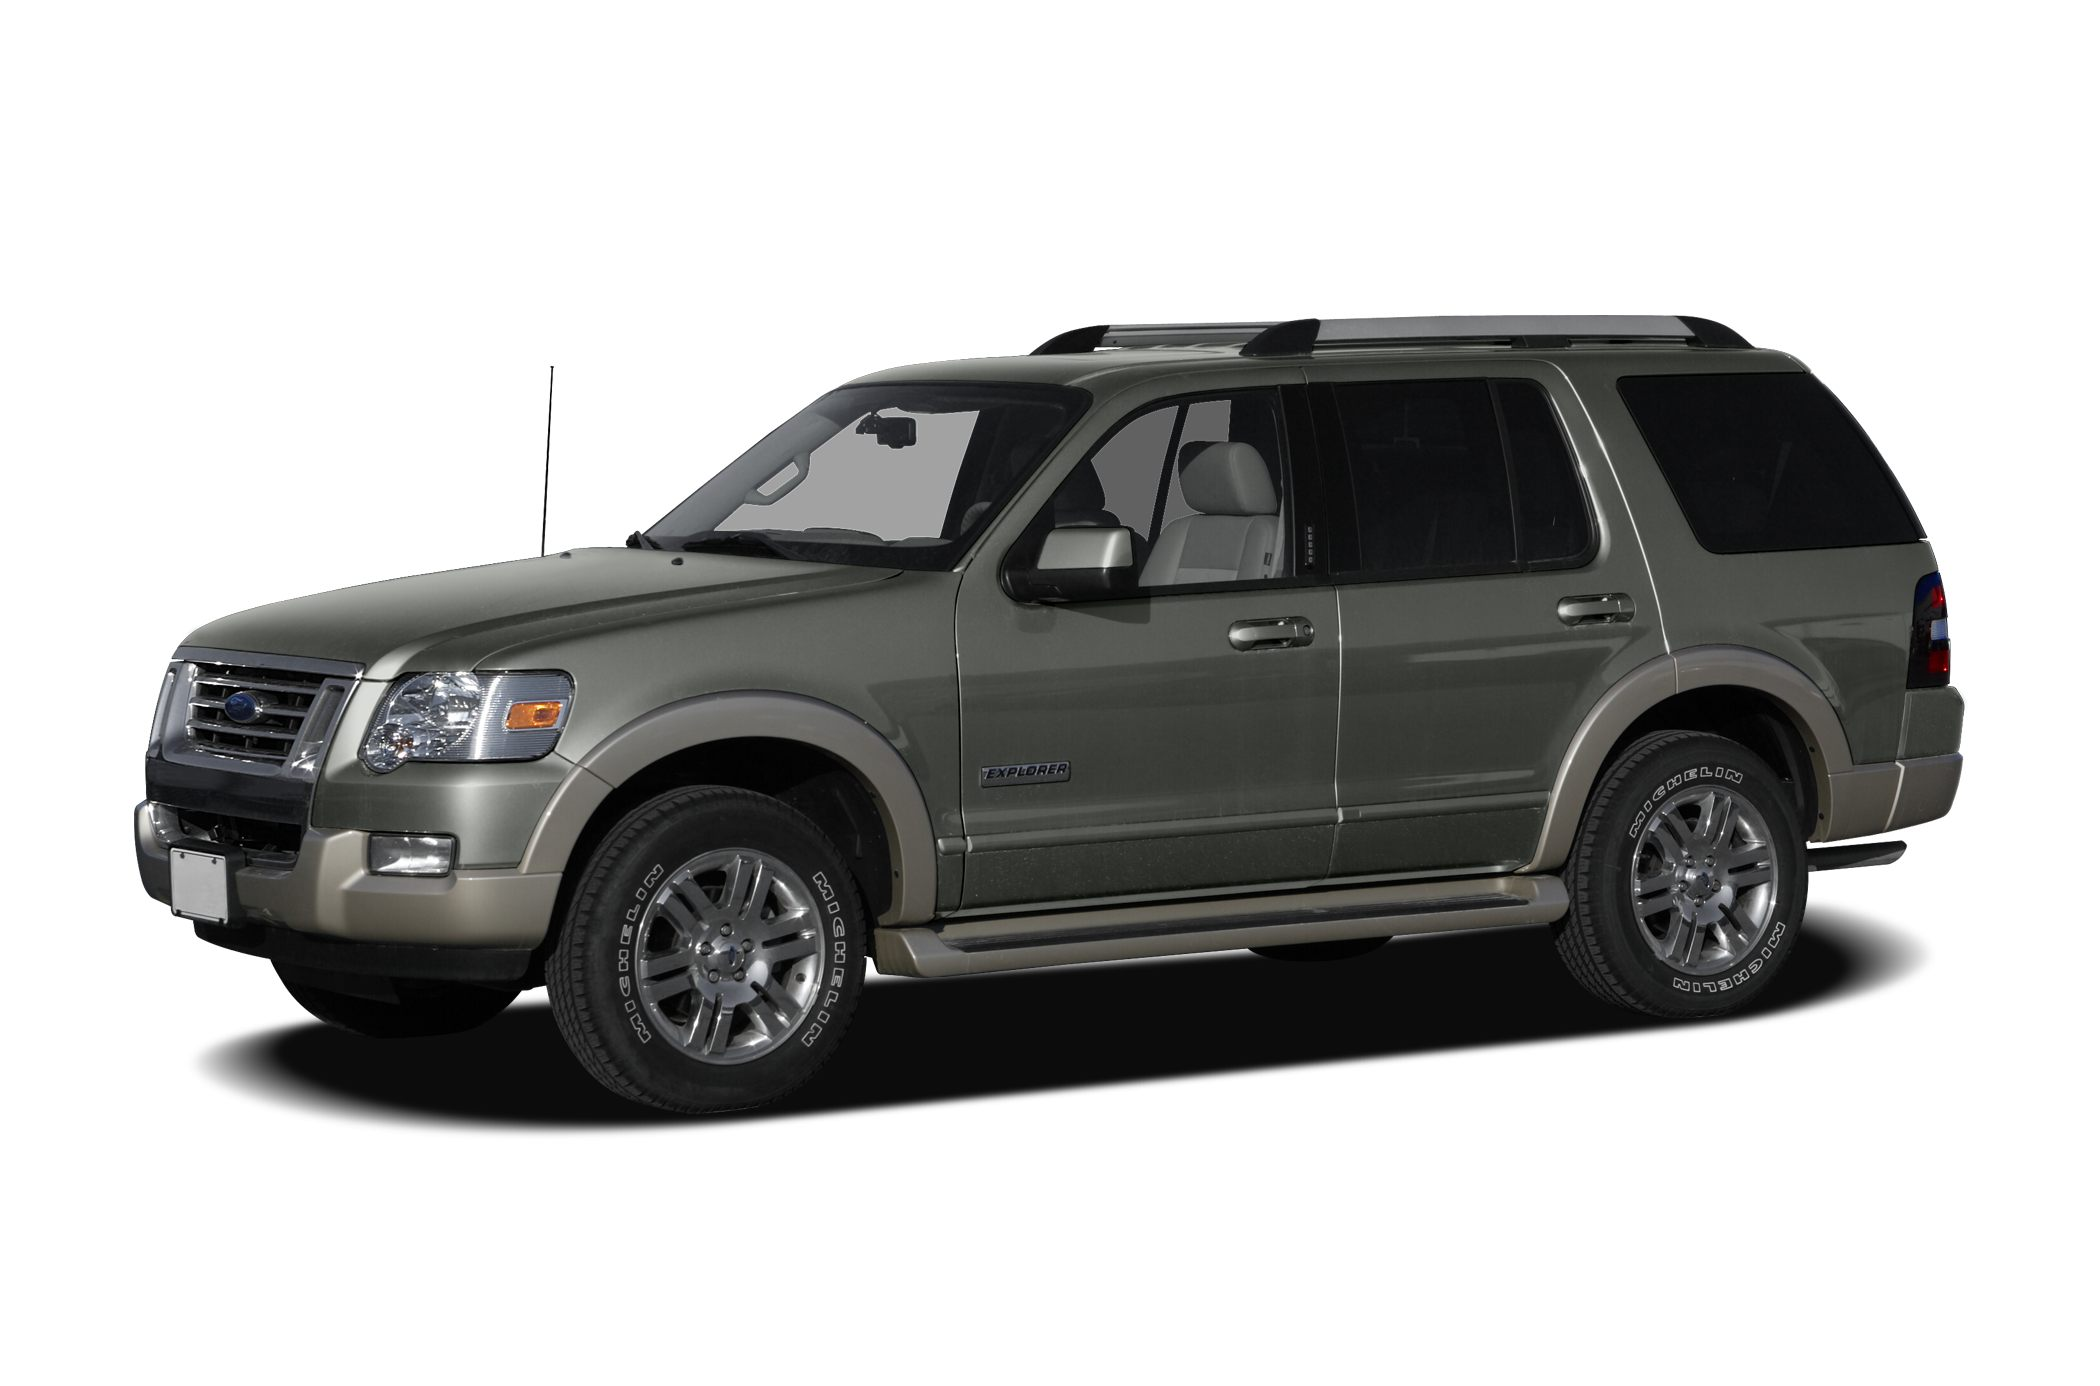 2007 Ford Explorer Eddie Bauer SUV for sale in Seattle for $10,000 with 124,462 miles.